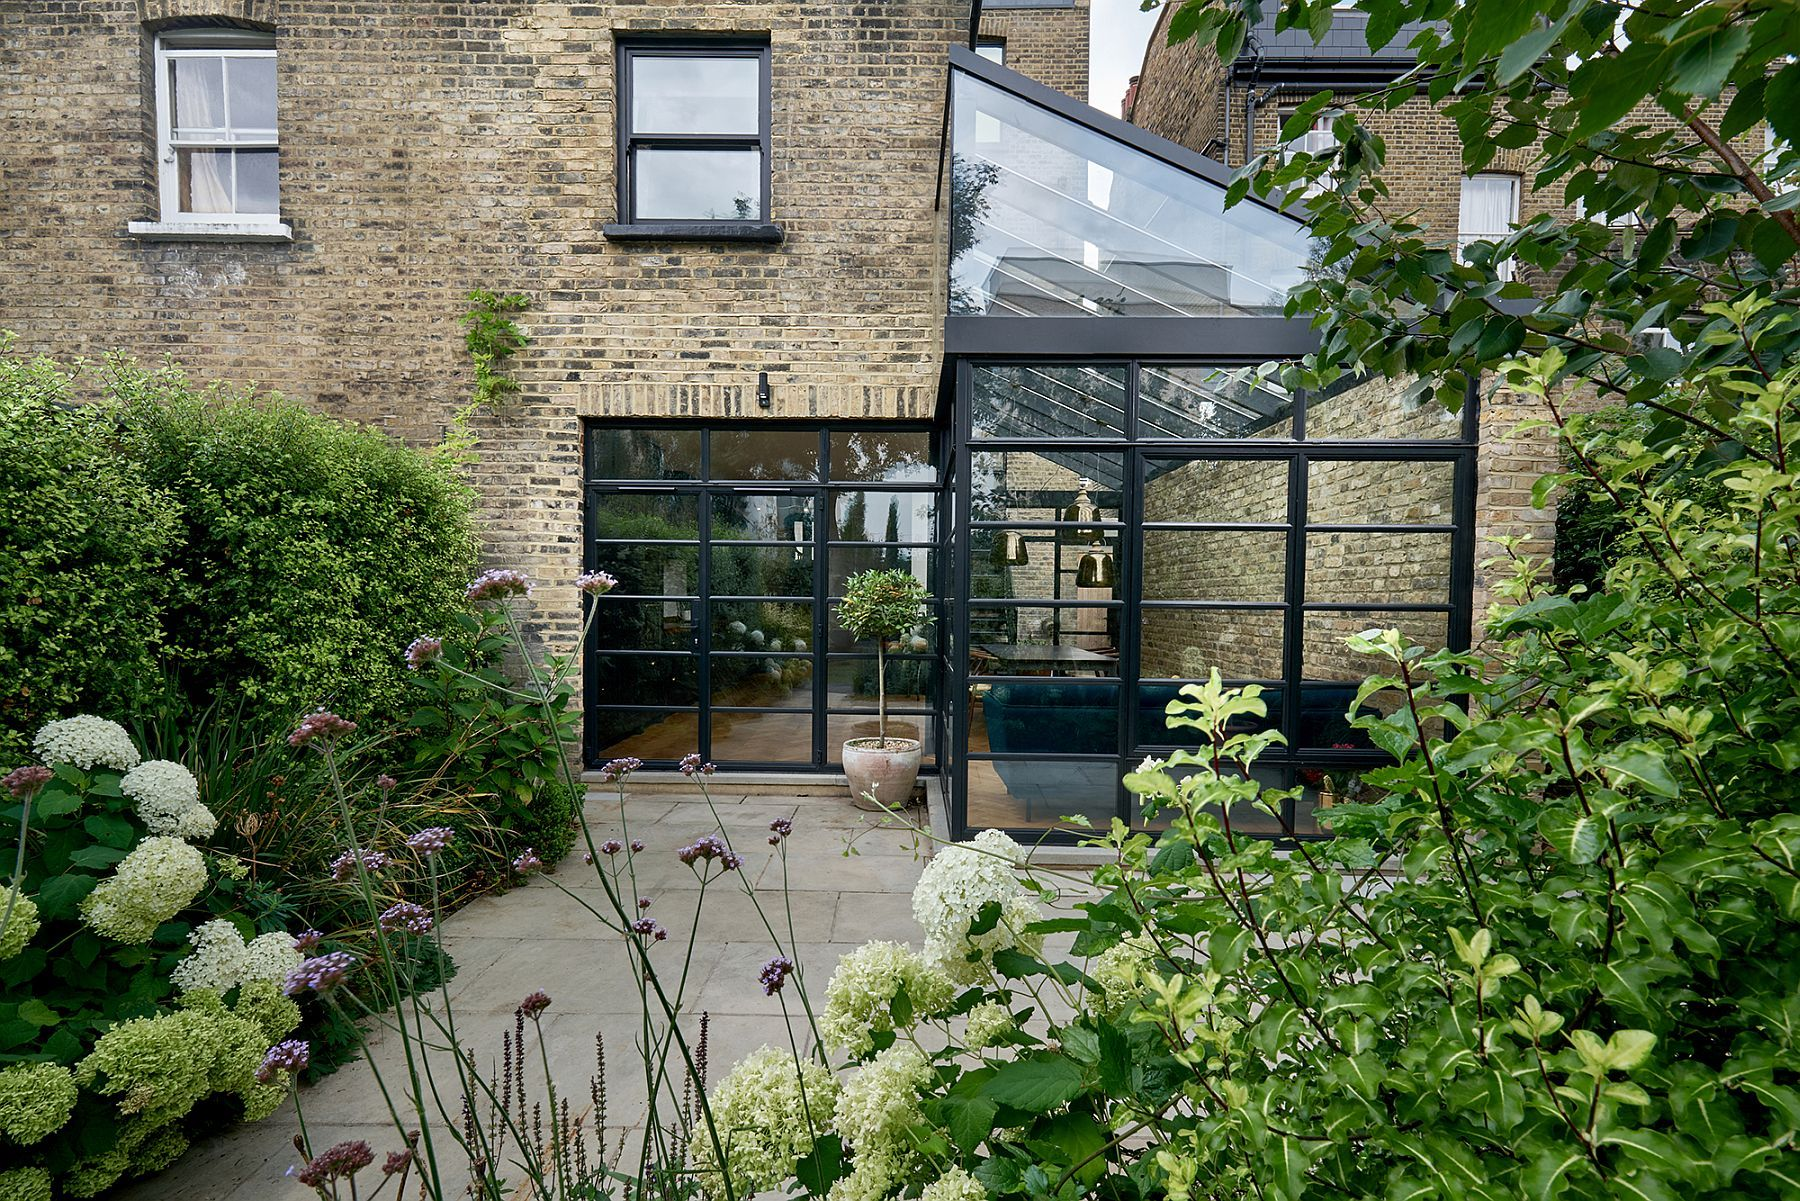 Terrace garden details - Modern Extension Using Crittall Windows Refreshes Victorian Terrace House